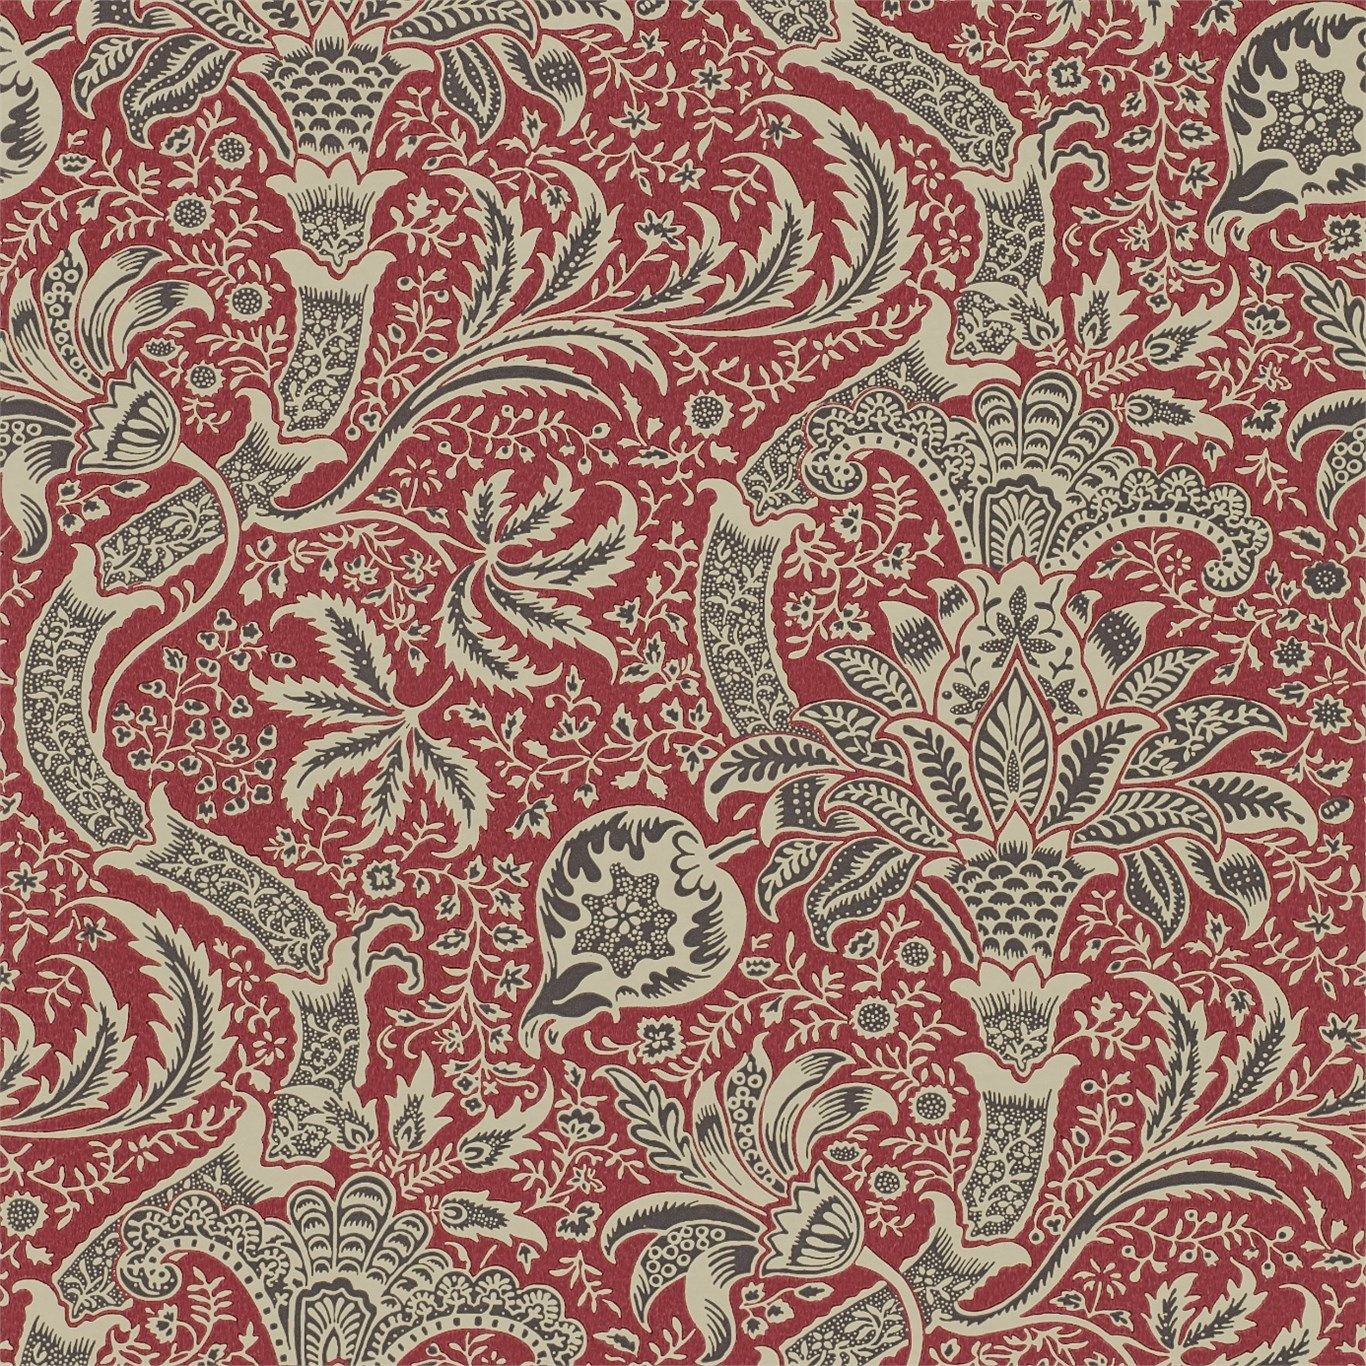 The Original Morris Co Arts and crafts fabrics and wallpaper